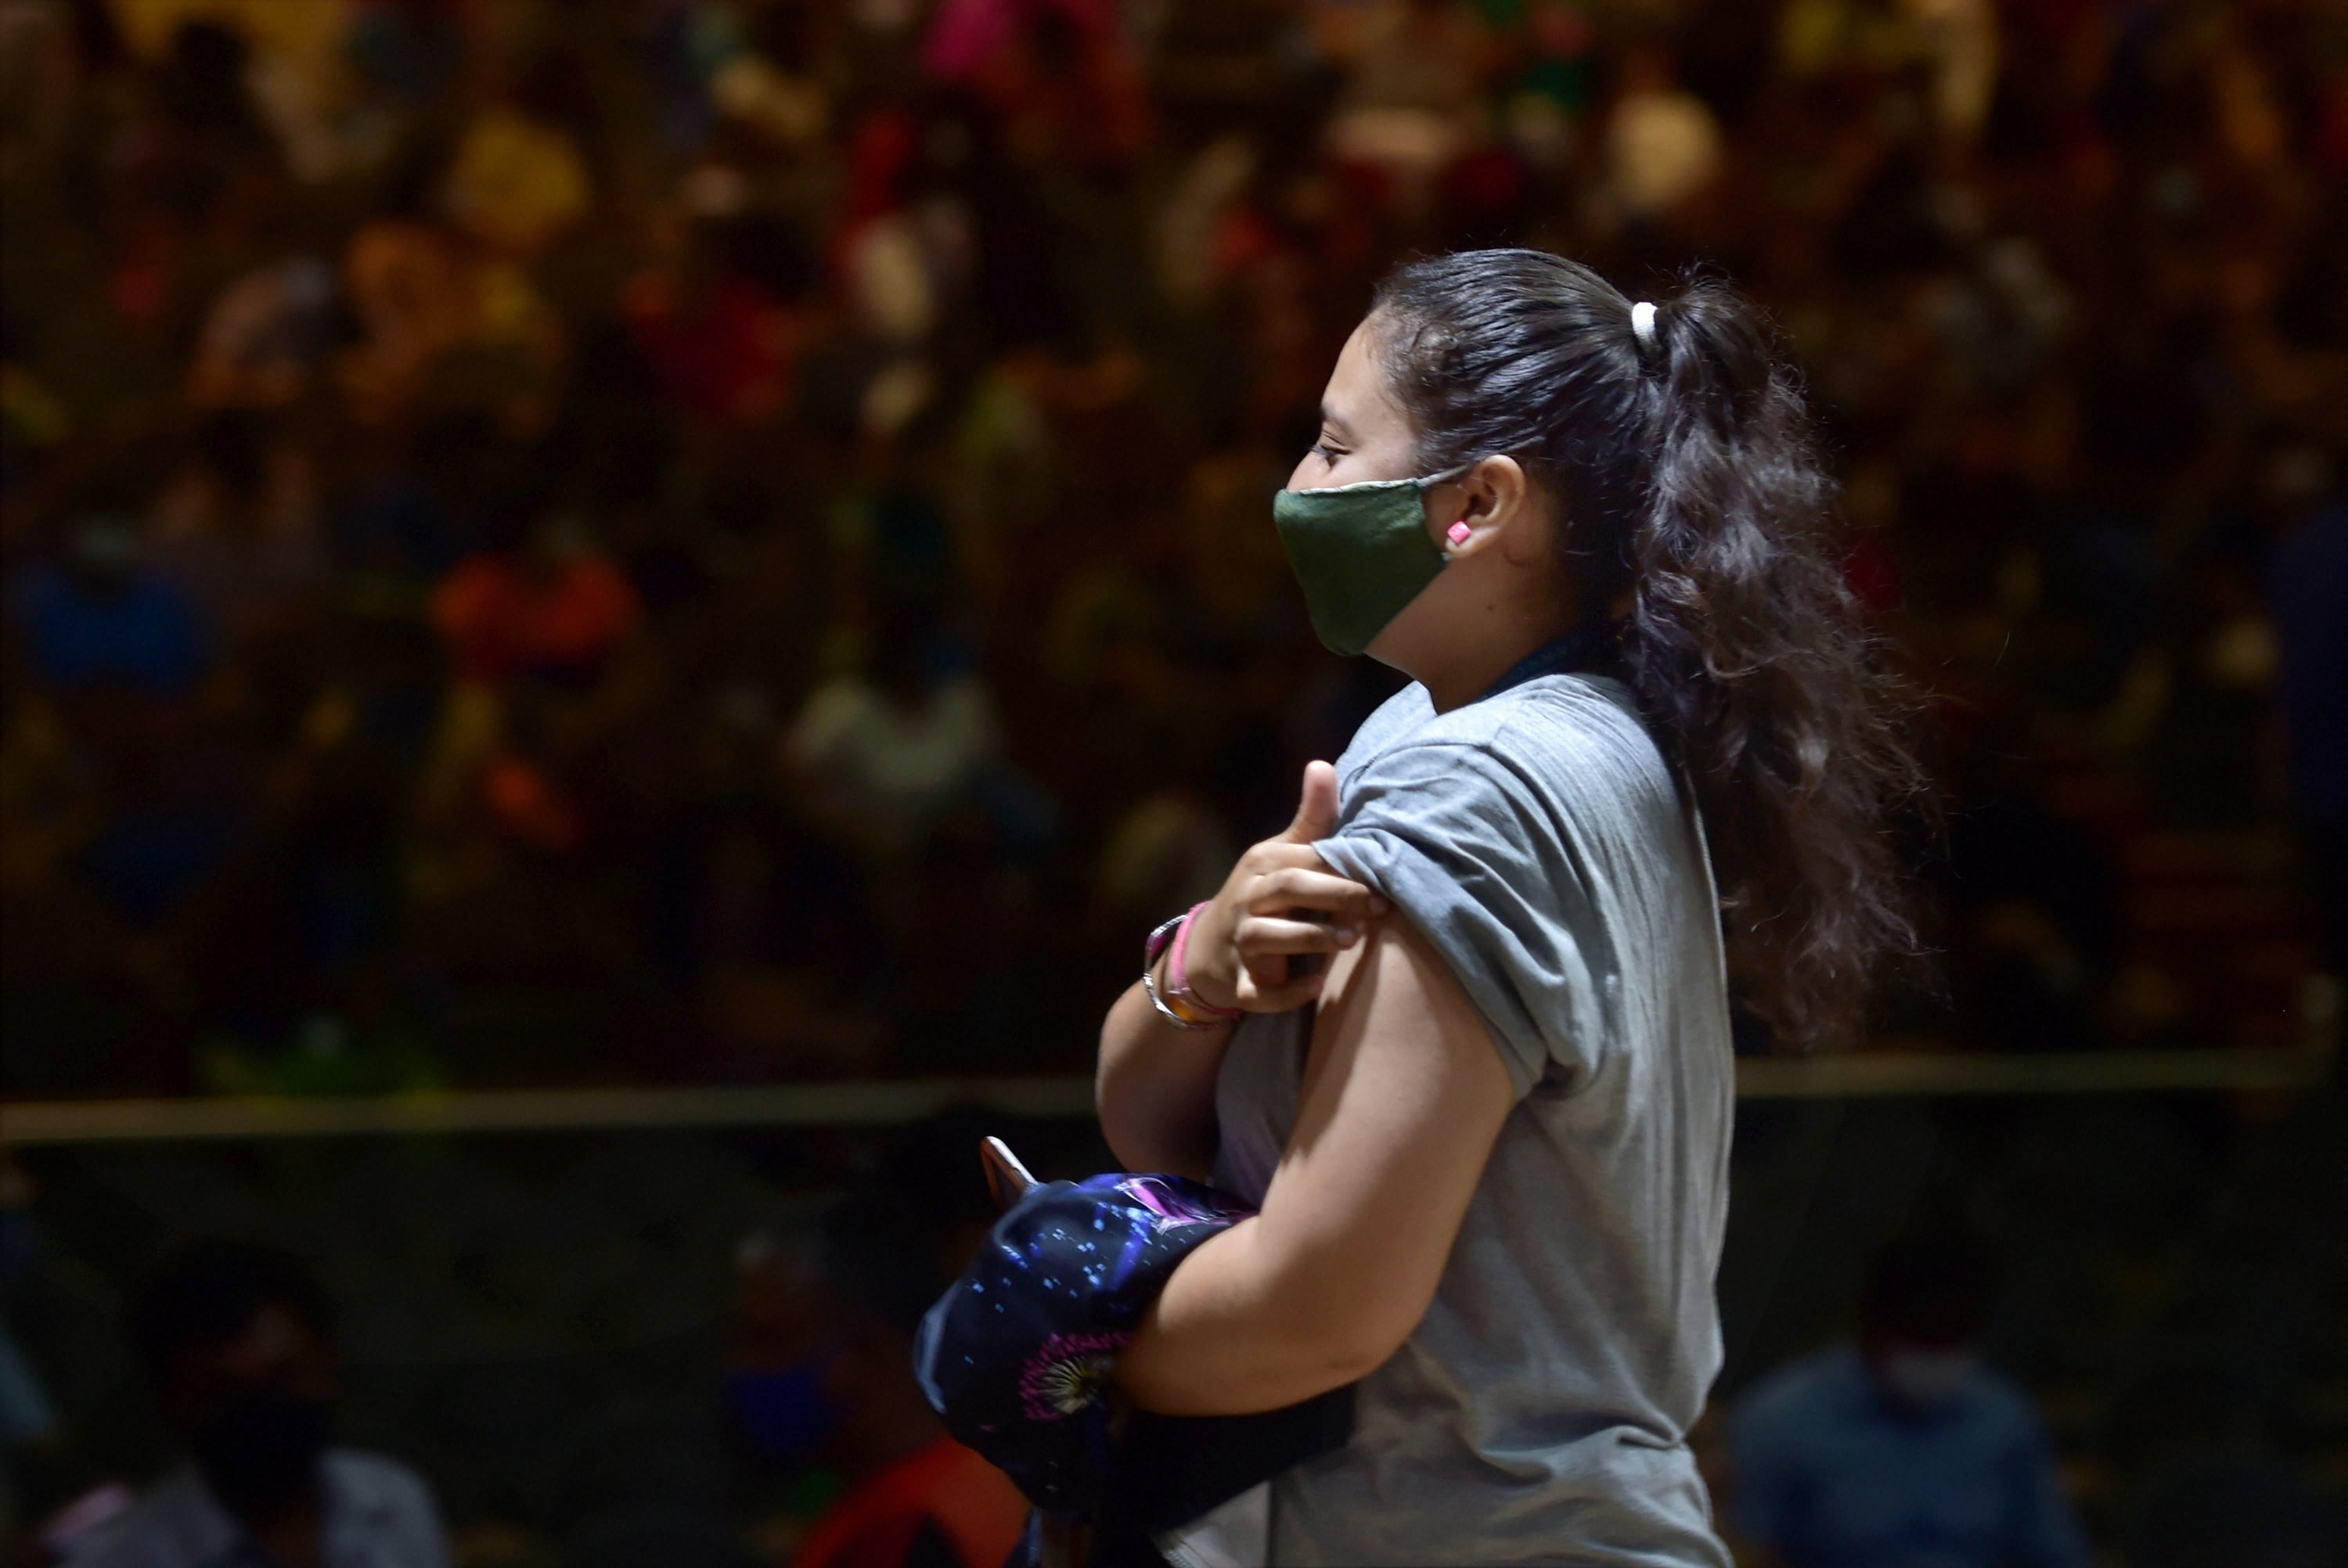 Bengaluru: A student reacts after receiving a dose of COVID-19 vaccine, during the ongoing coronavirus-induced lockdown in Bengaluru, Monday, July 5, 2021. (PTI Photo/Shailendra Bhojak)(PTI07_05_2021_000120B) (PTI)